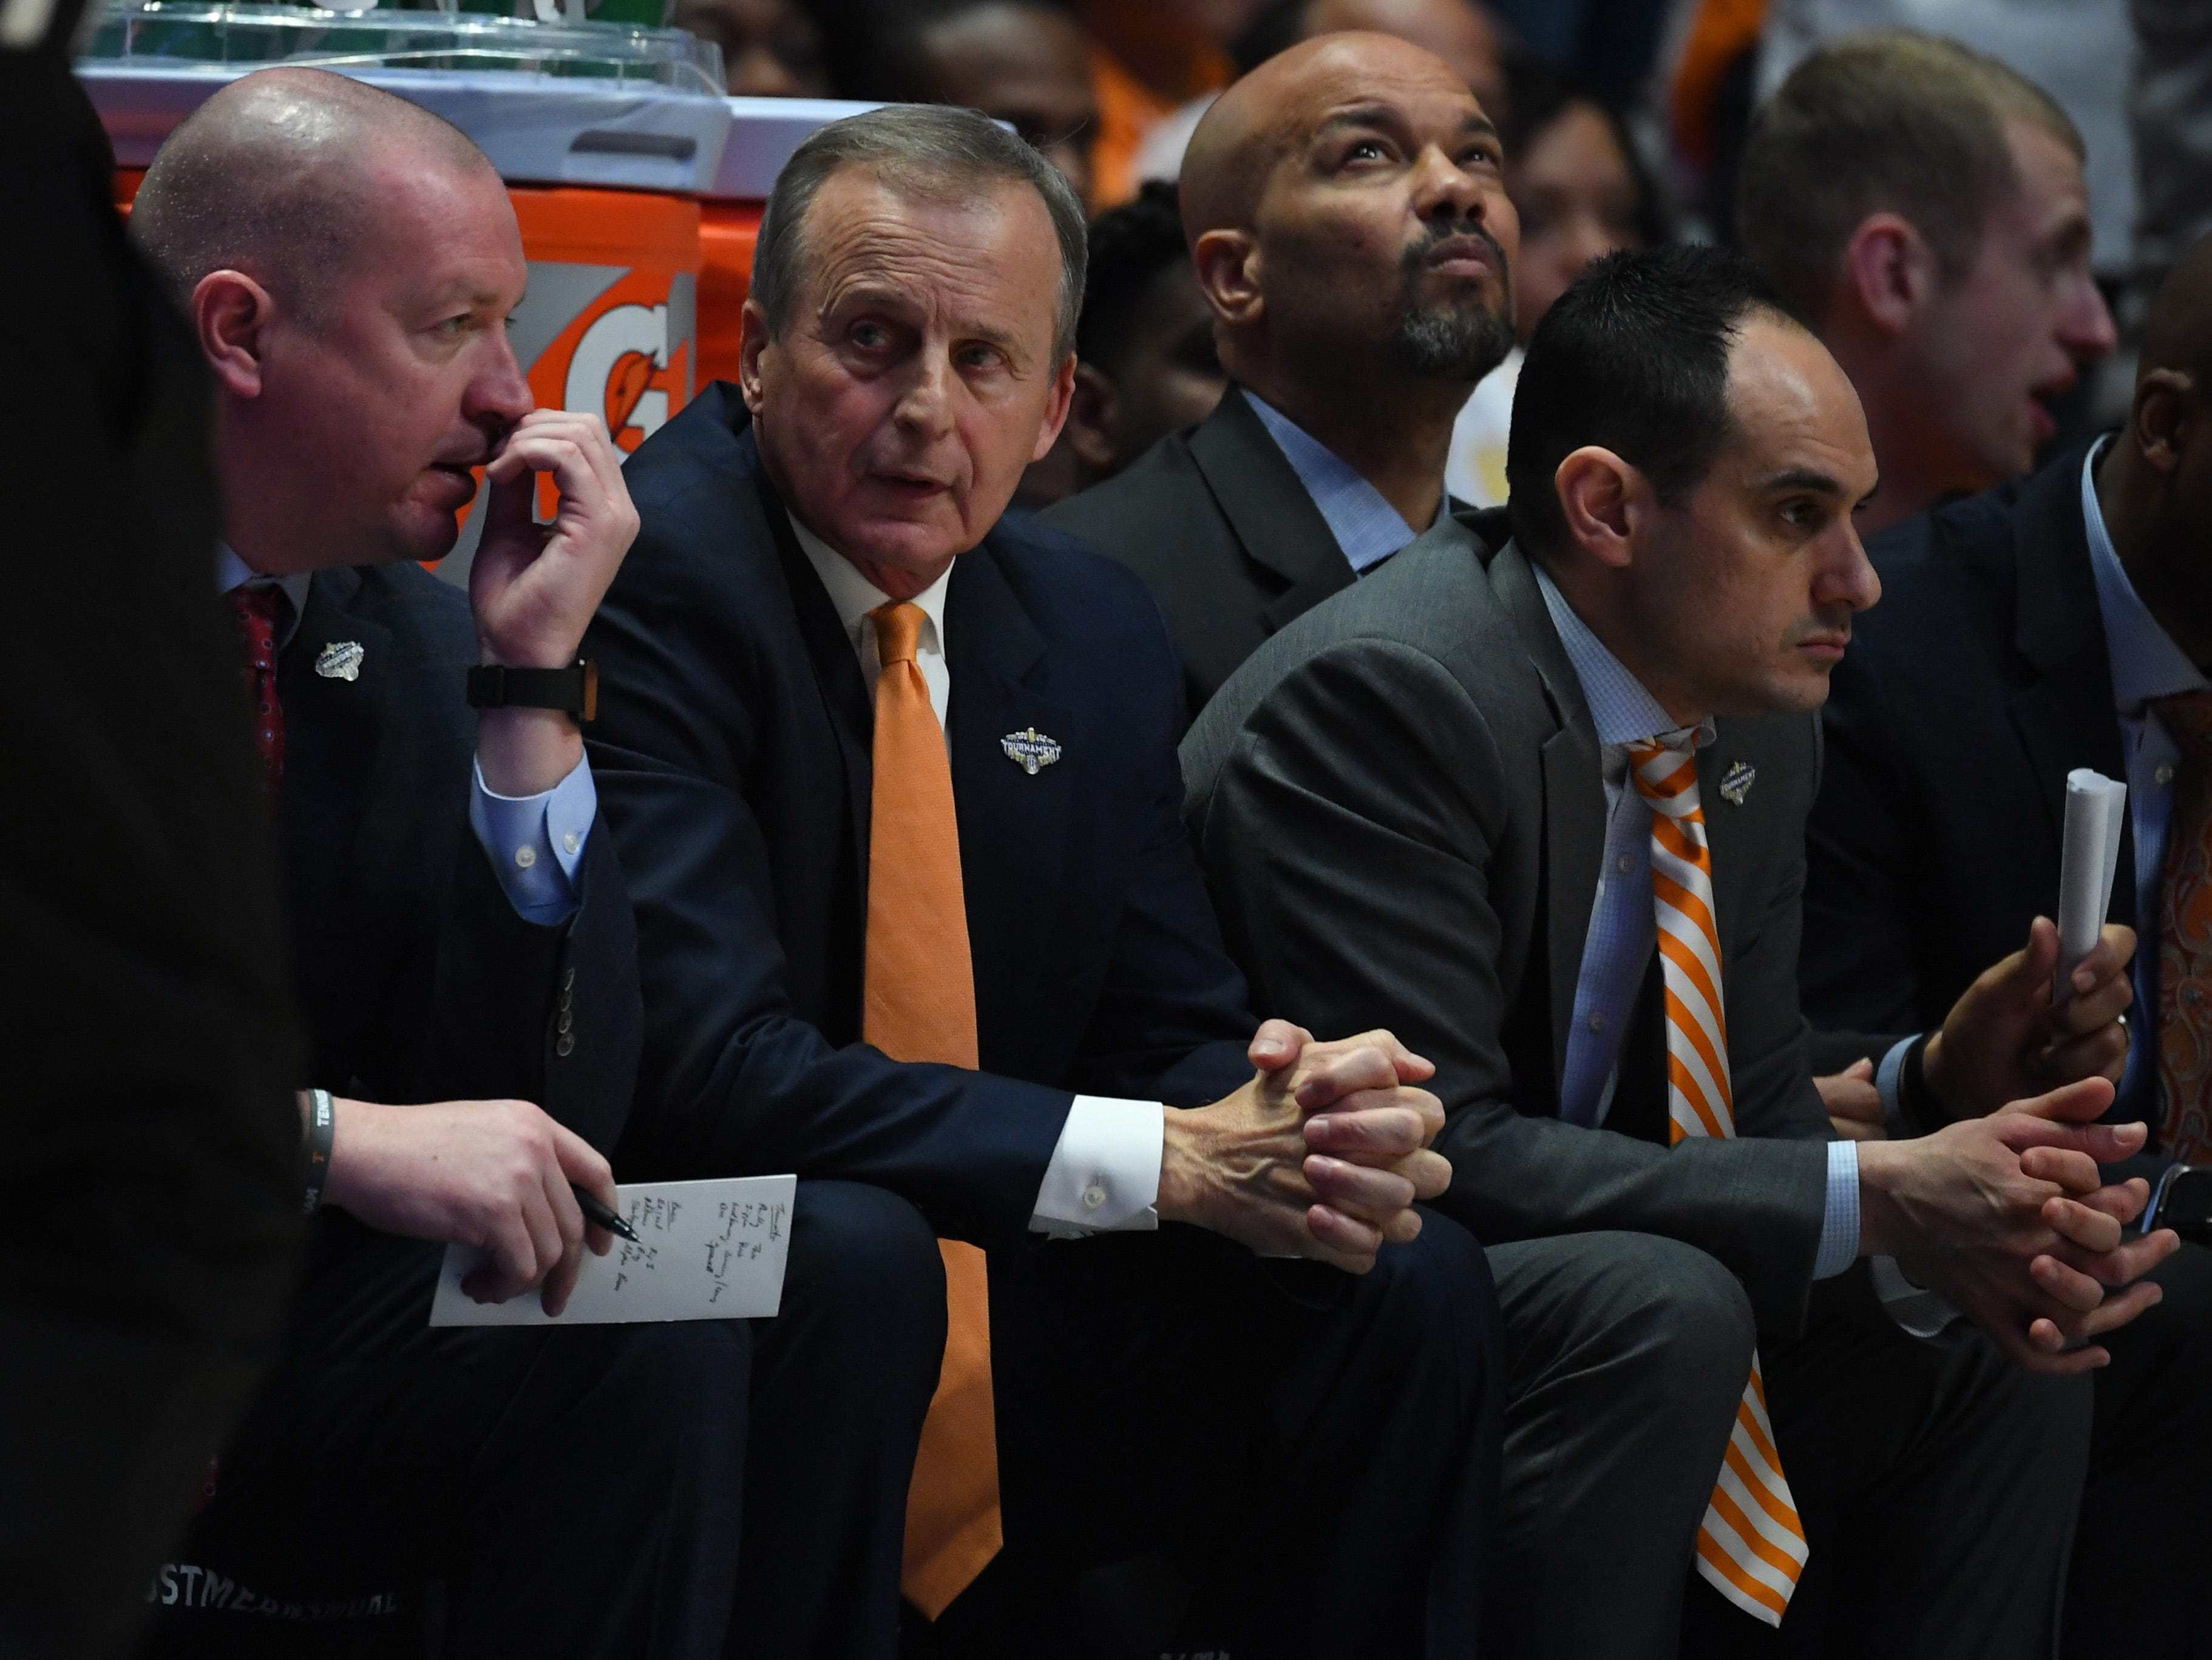 Mar 17, 2019; Nashville, TN, USA; Tennessee Volunteers head coach Rick Barnes looks on from the bench during the first half against the Auburn Tigers in the SEC conference tournament championship game at Bridgestone Arena. Mandatory Credit: Christopher Hanewinckel-USA TODAY Sports